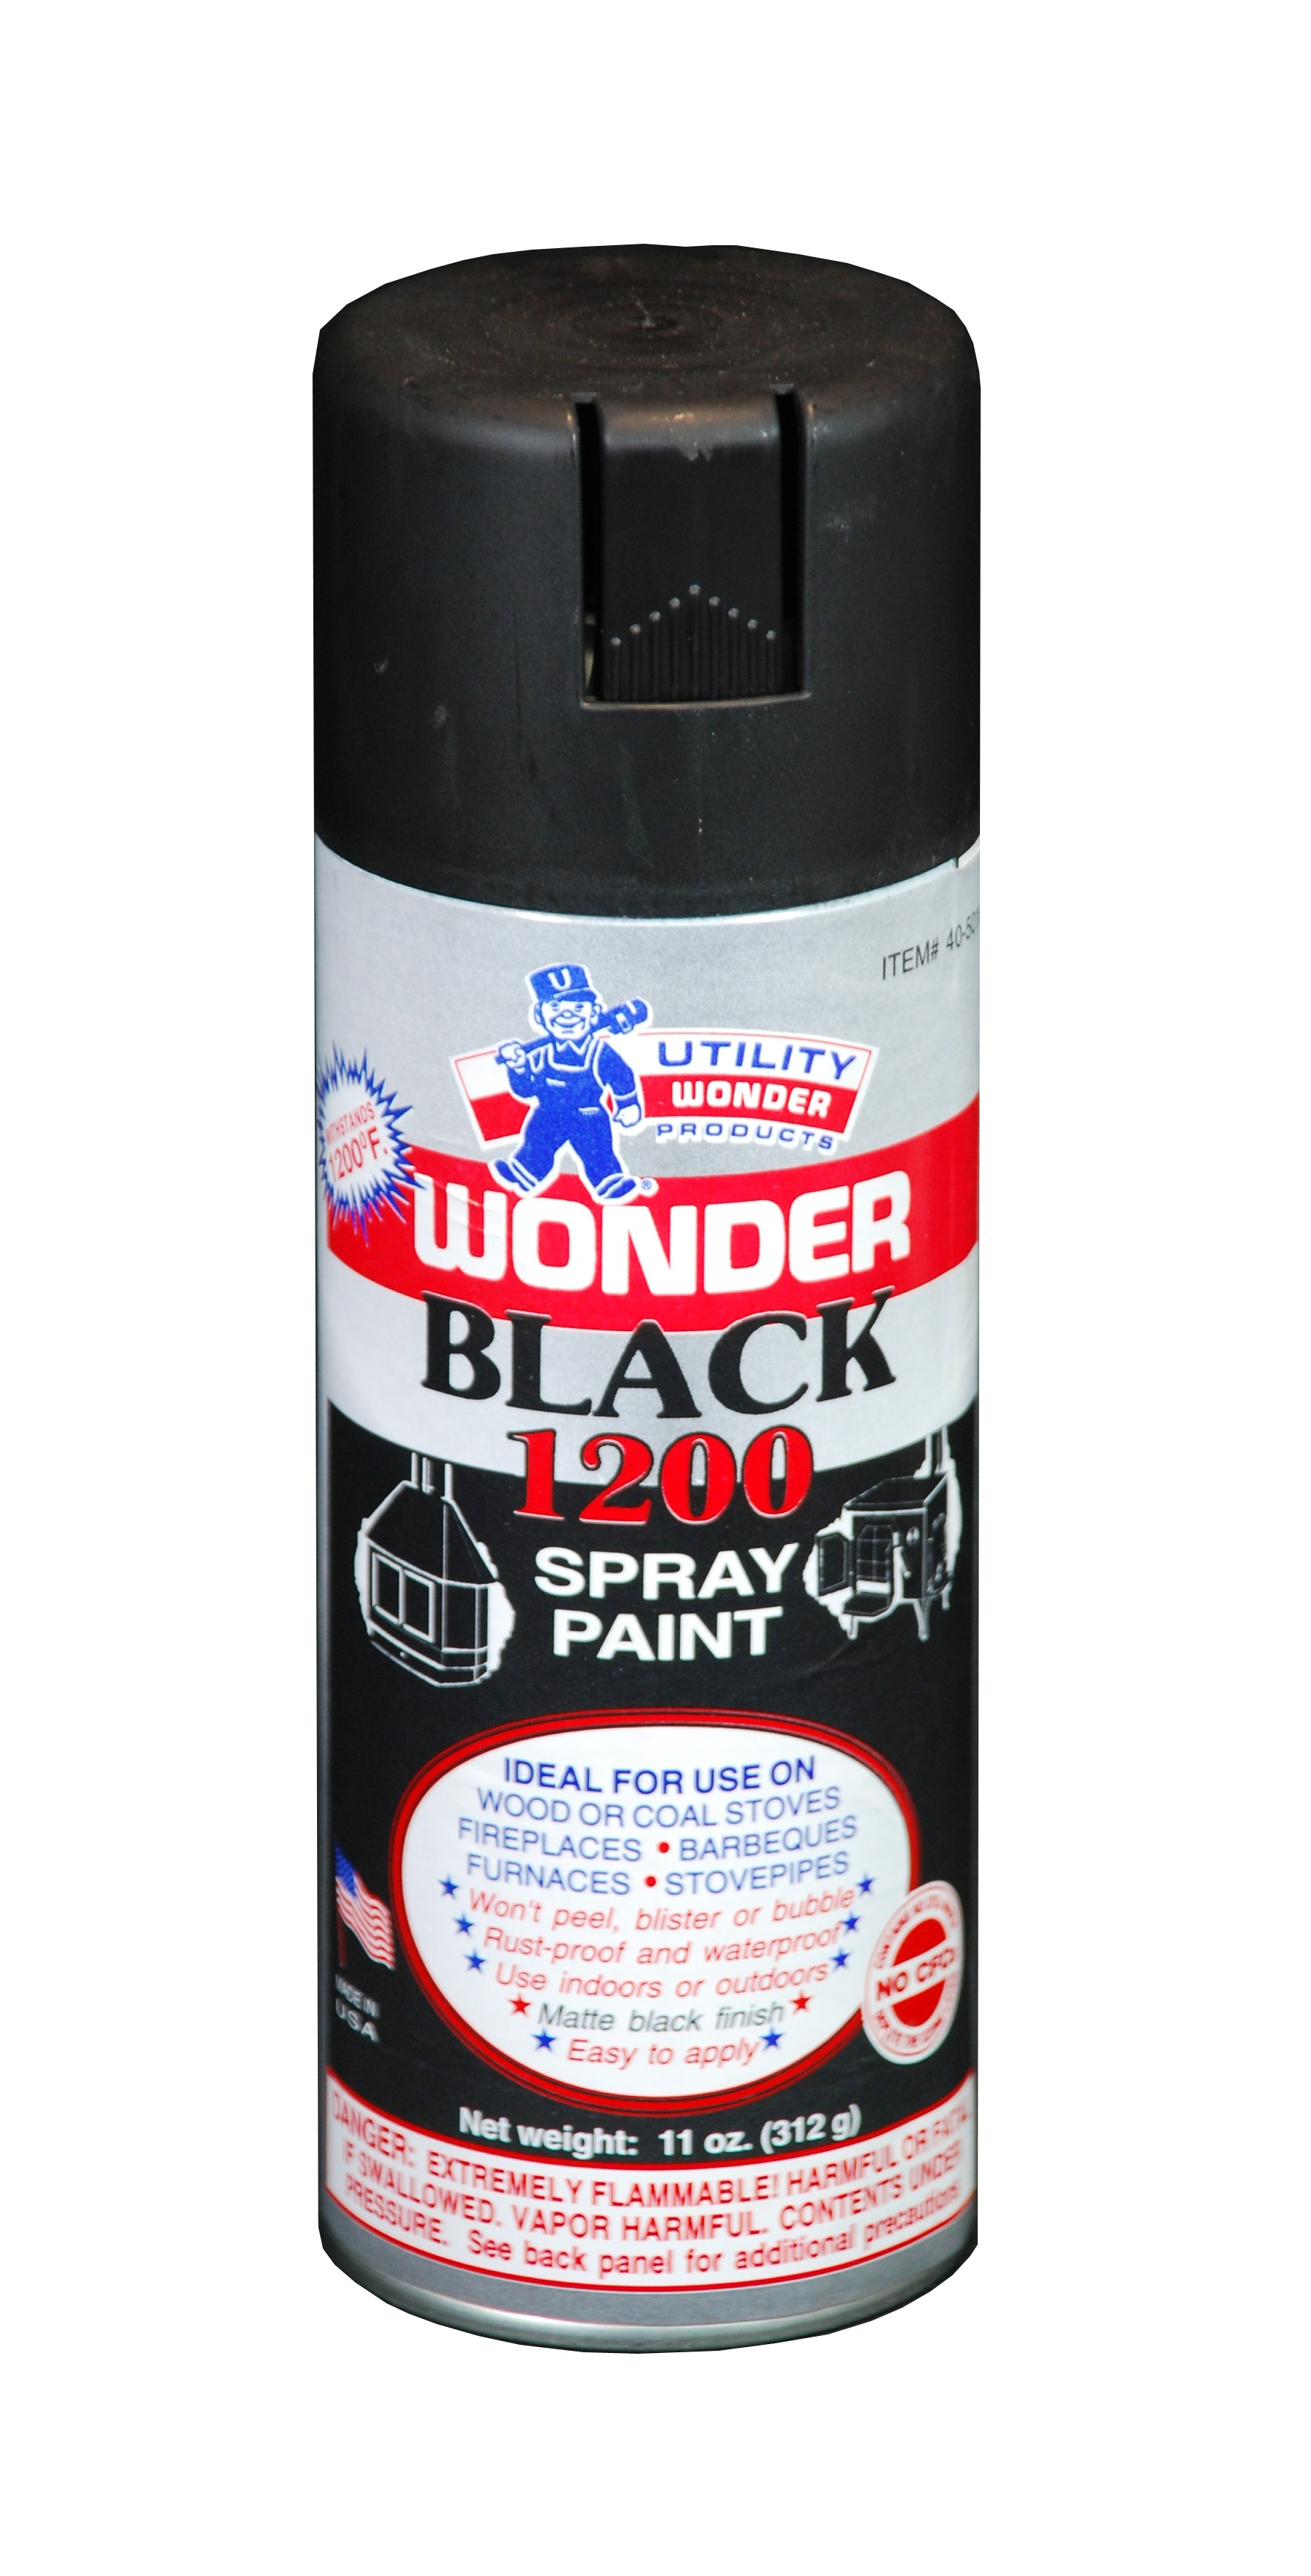 wonder black 1200 high temperature spray paint products